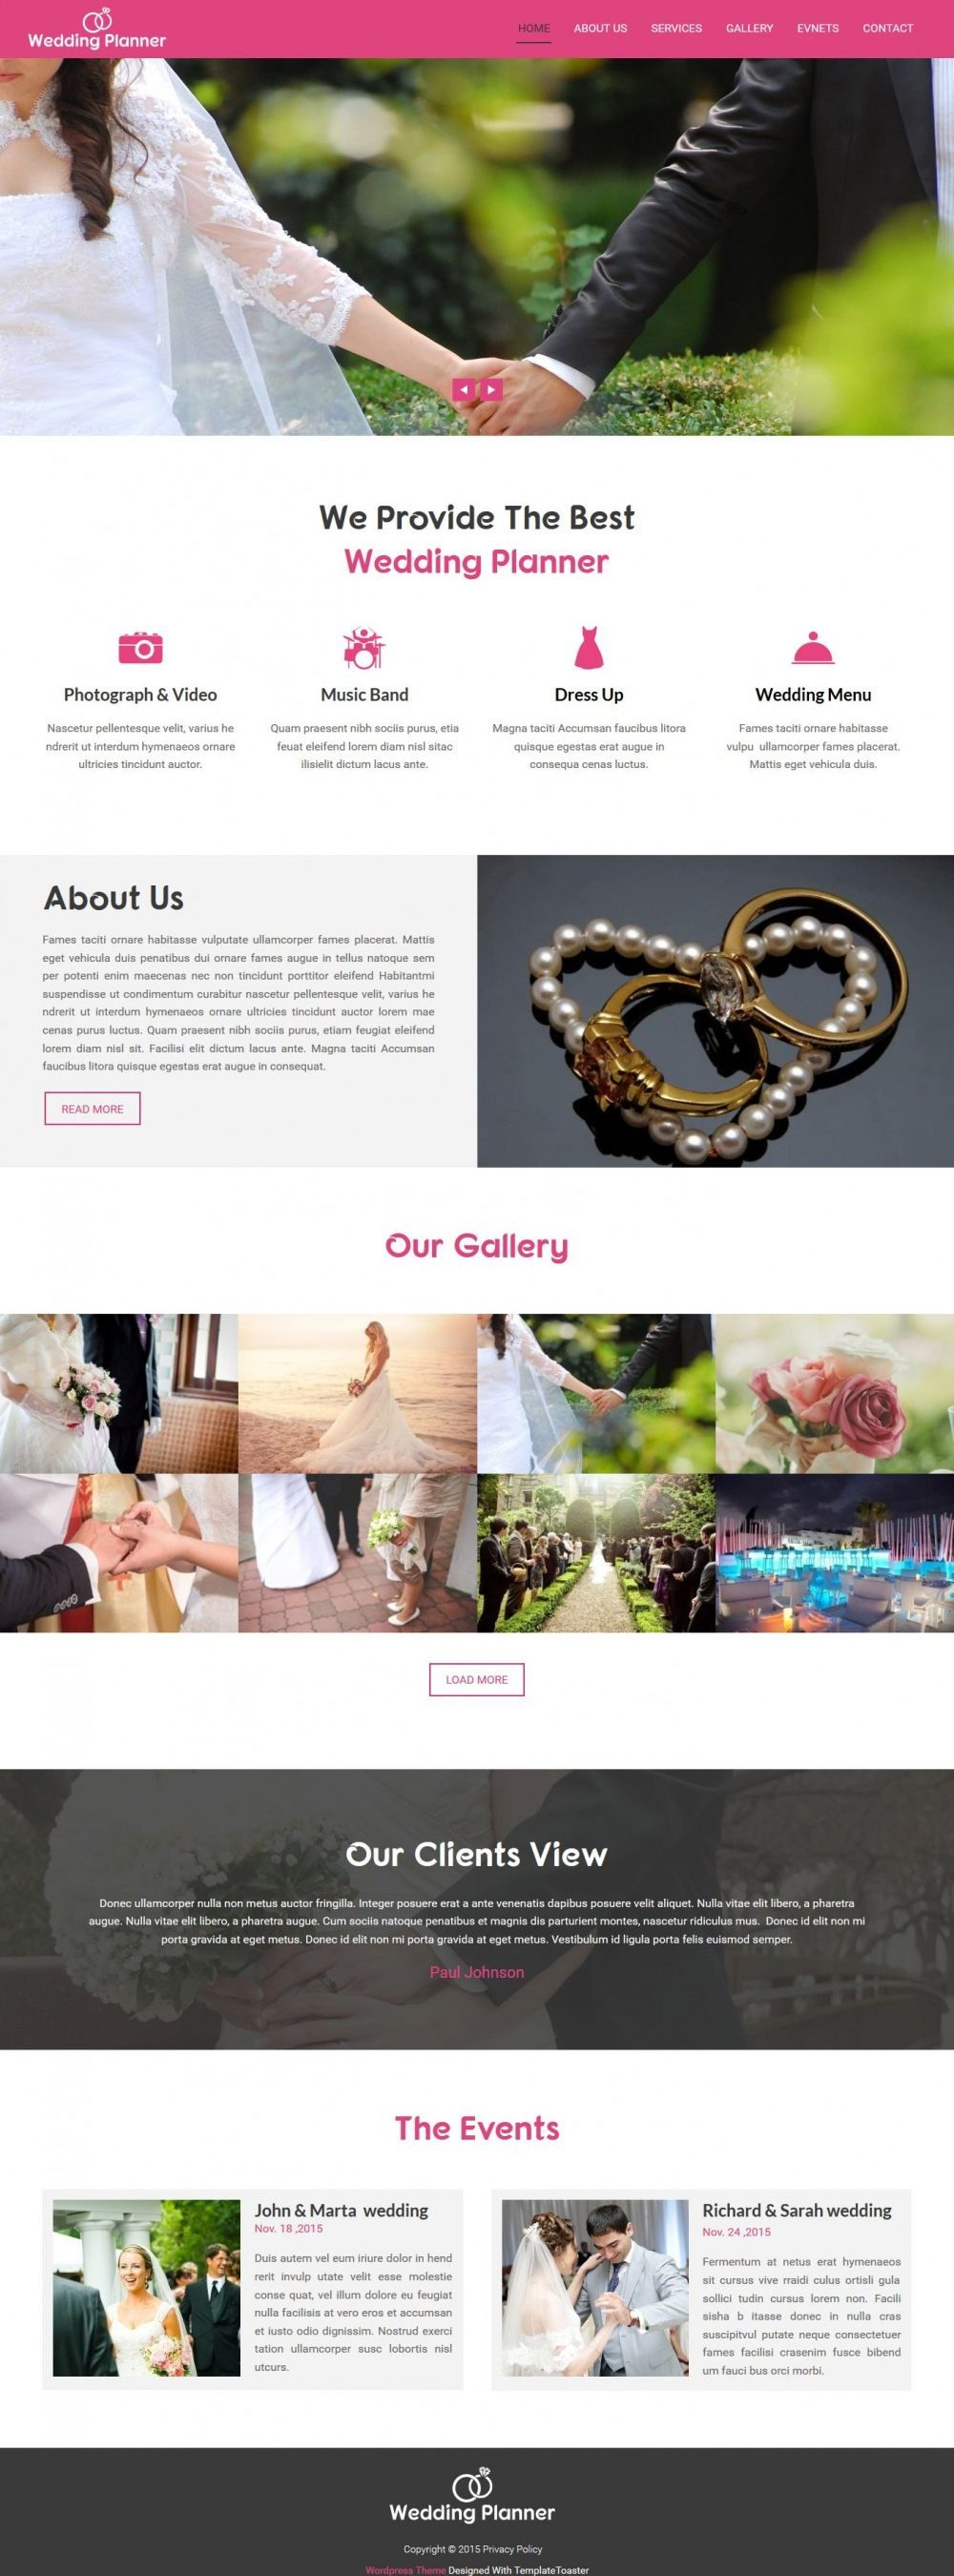 Wedding Planner Drupal Theme